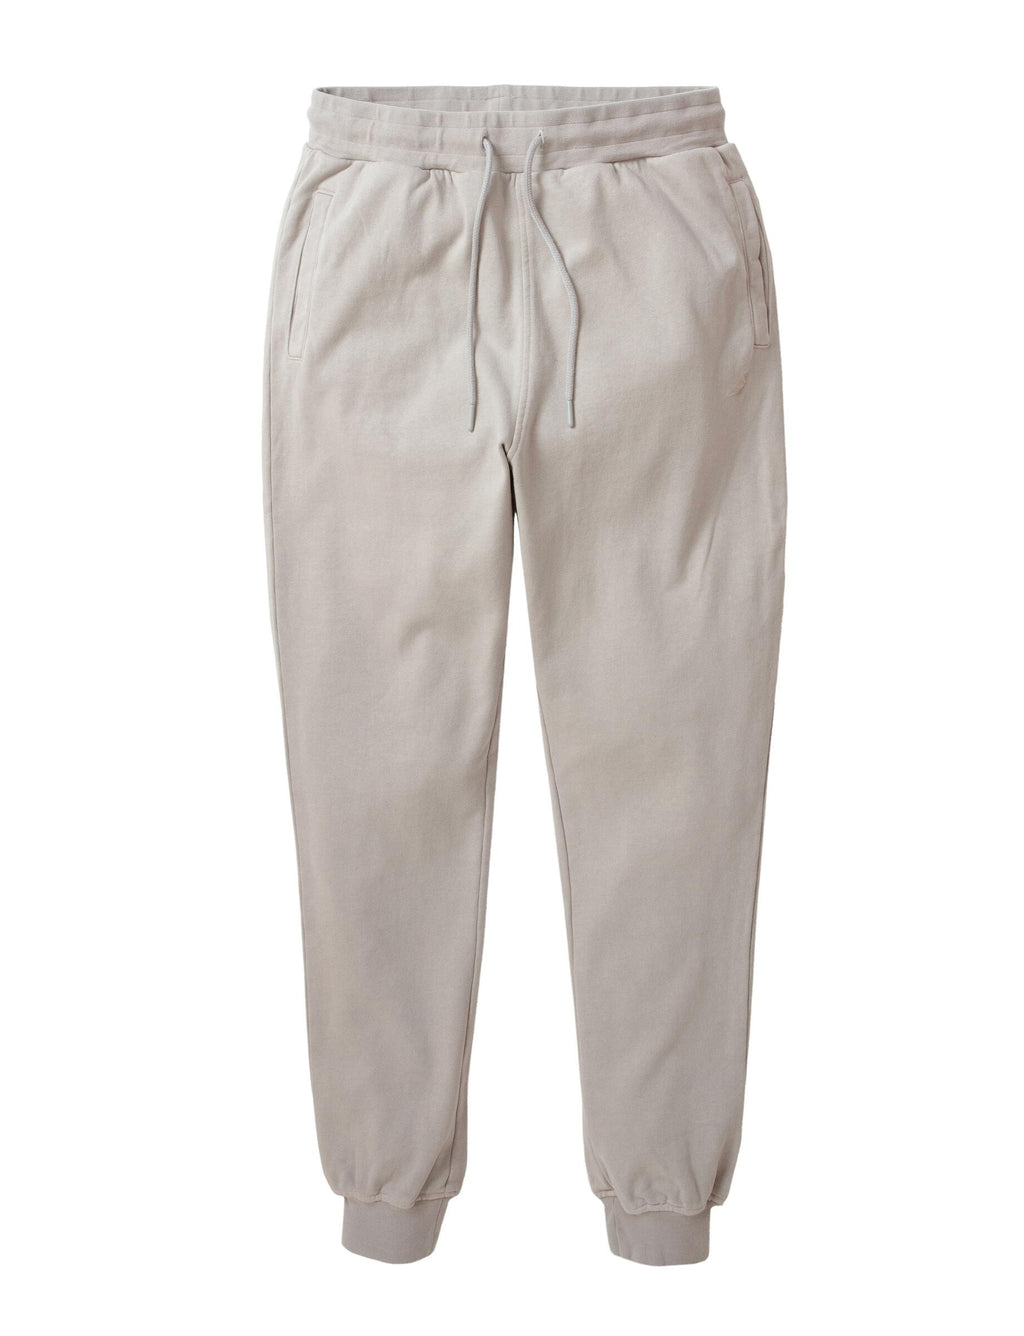 Garment Wash Sweatpant - Pants | Staple Pigeon